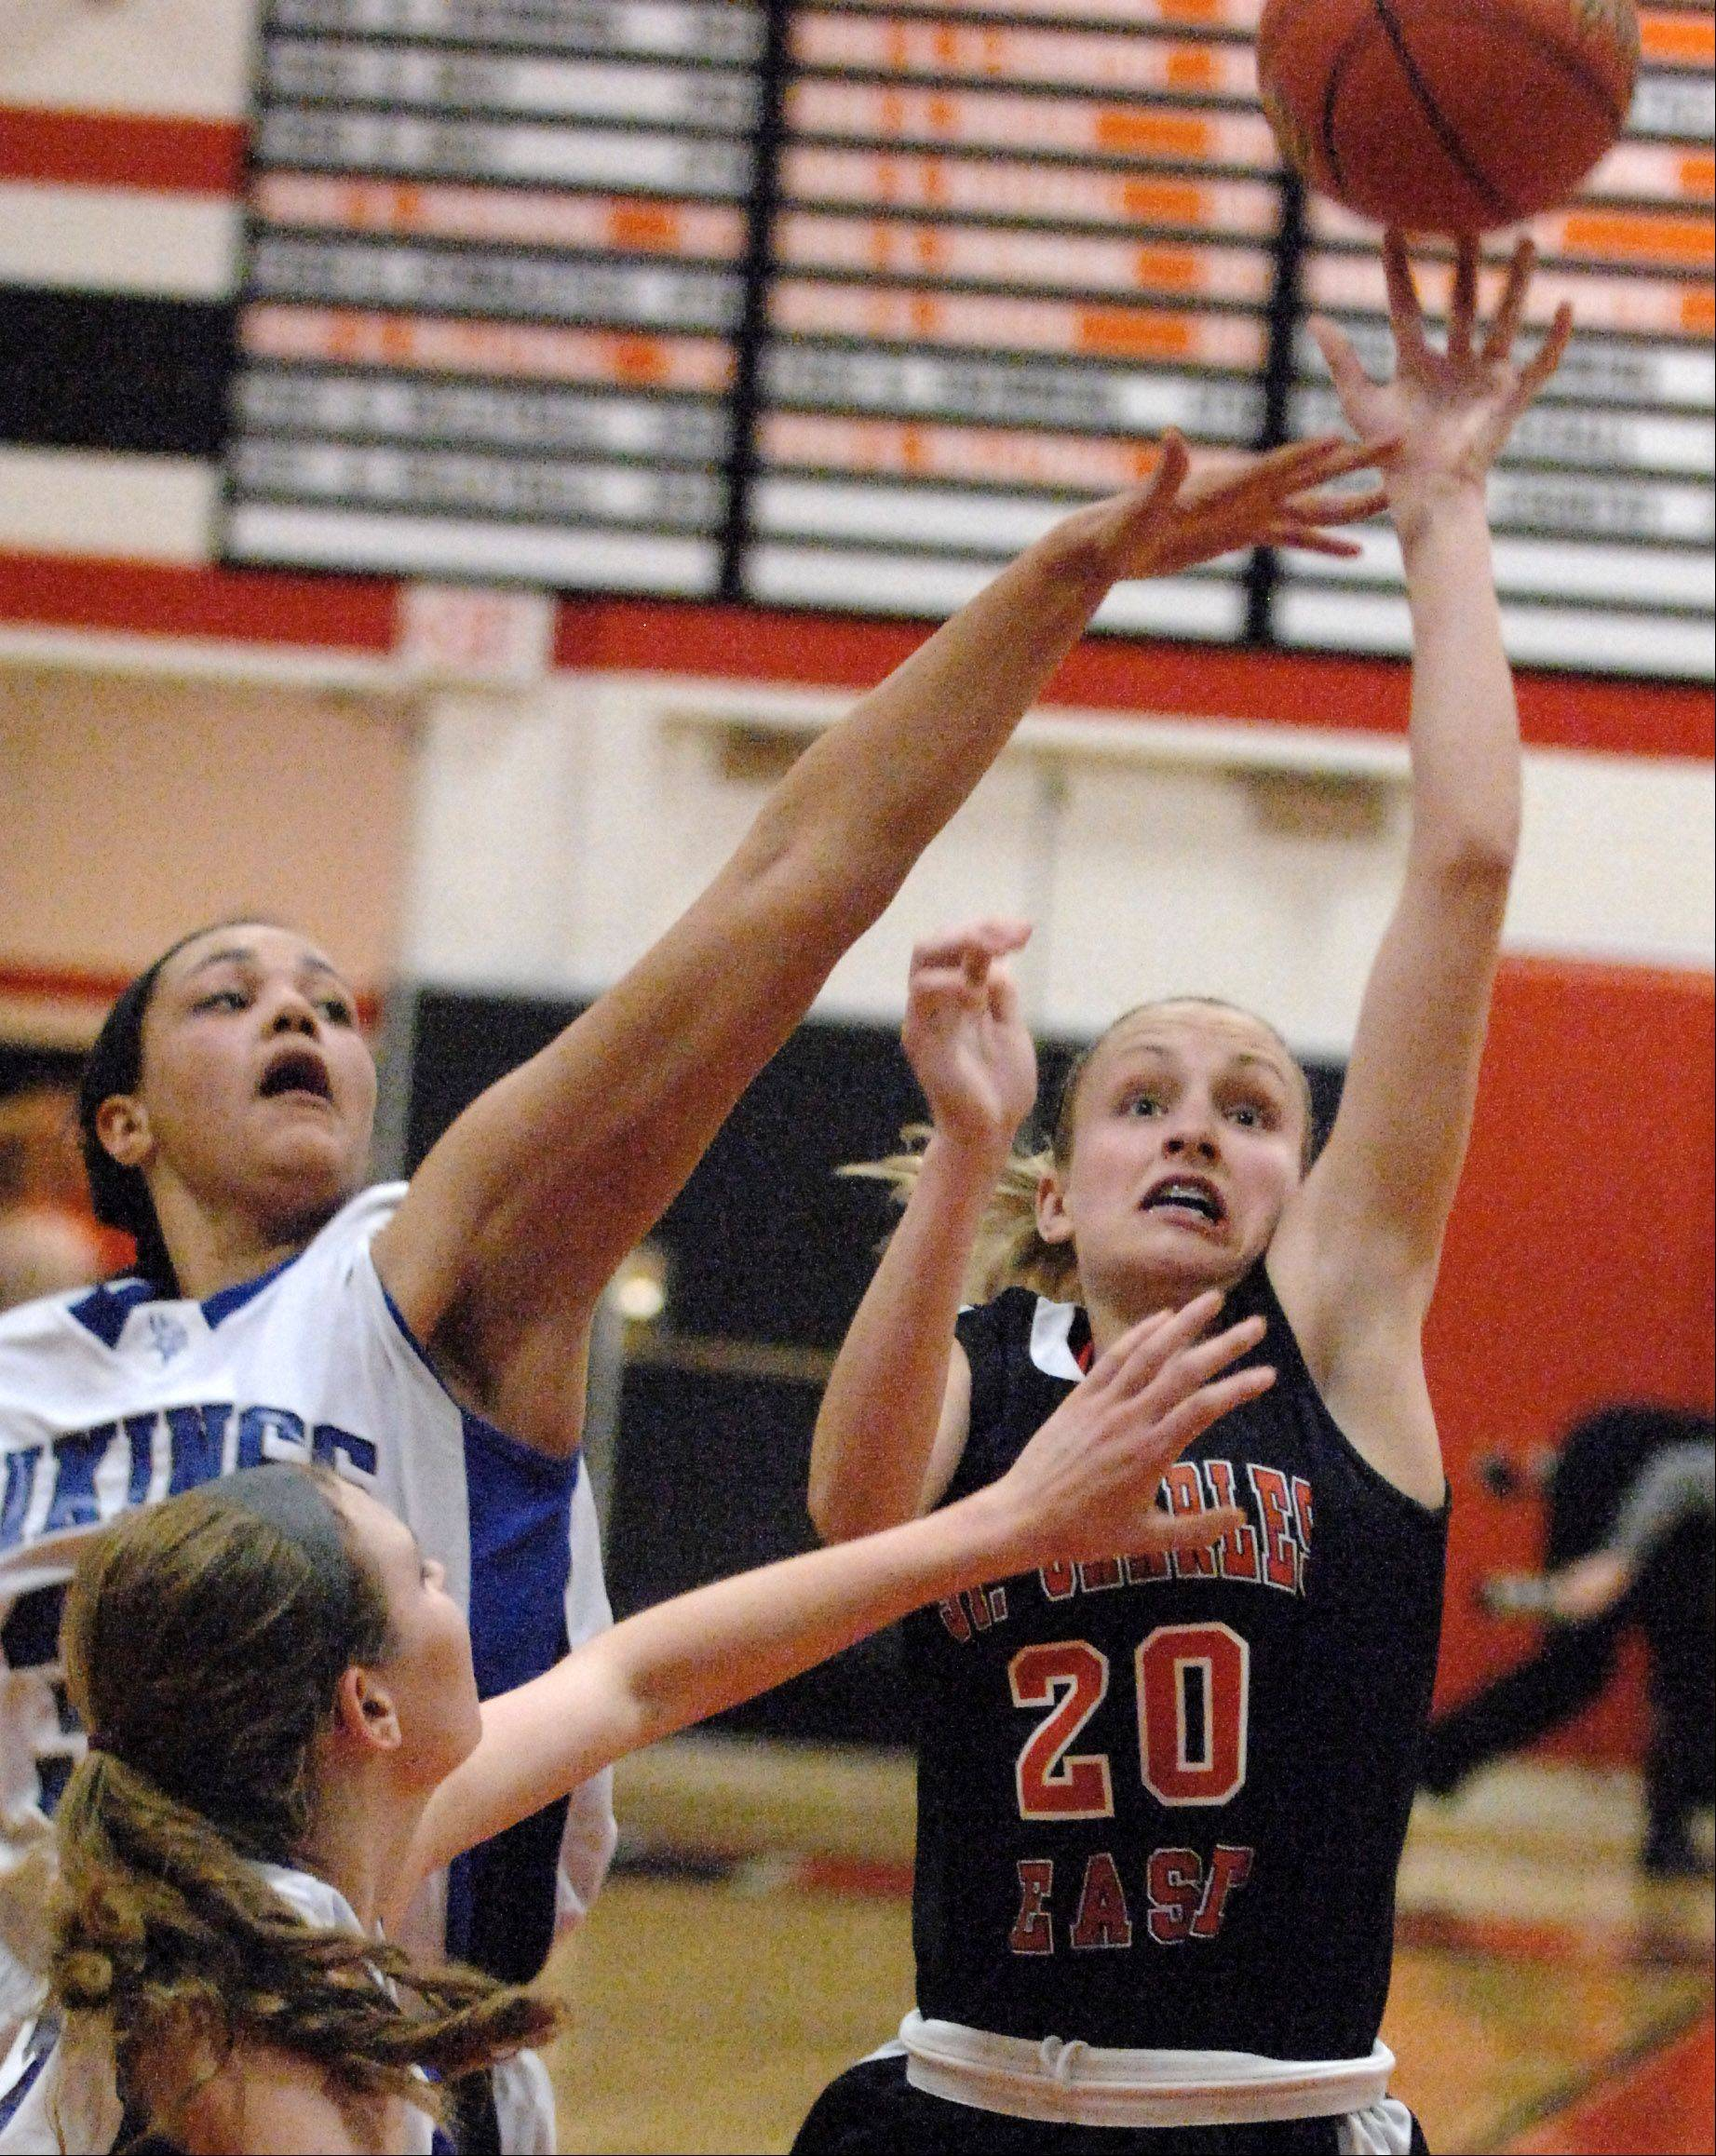 St. Charles East's Katie Claussner scores against Geneva during Thursday's regional championship game in St. Charles.